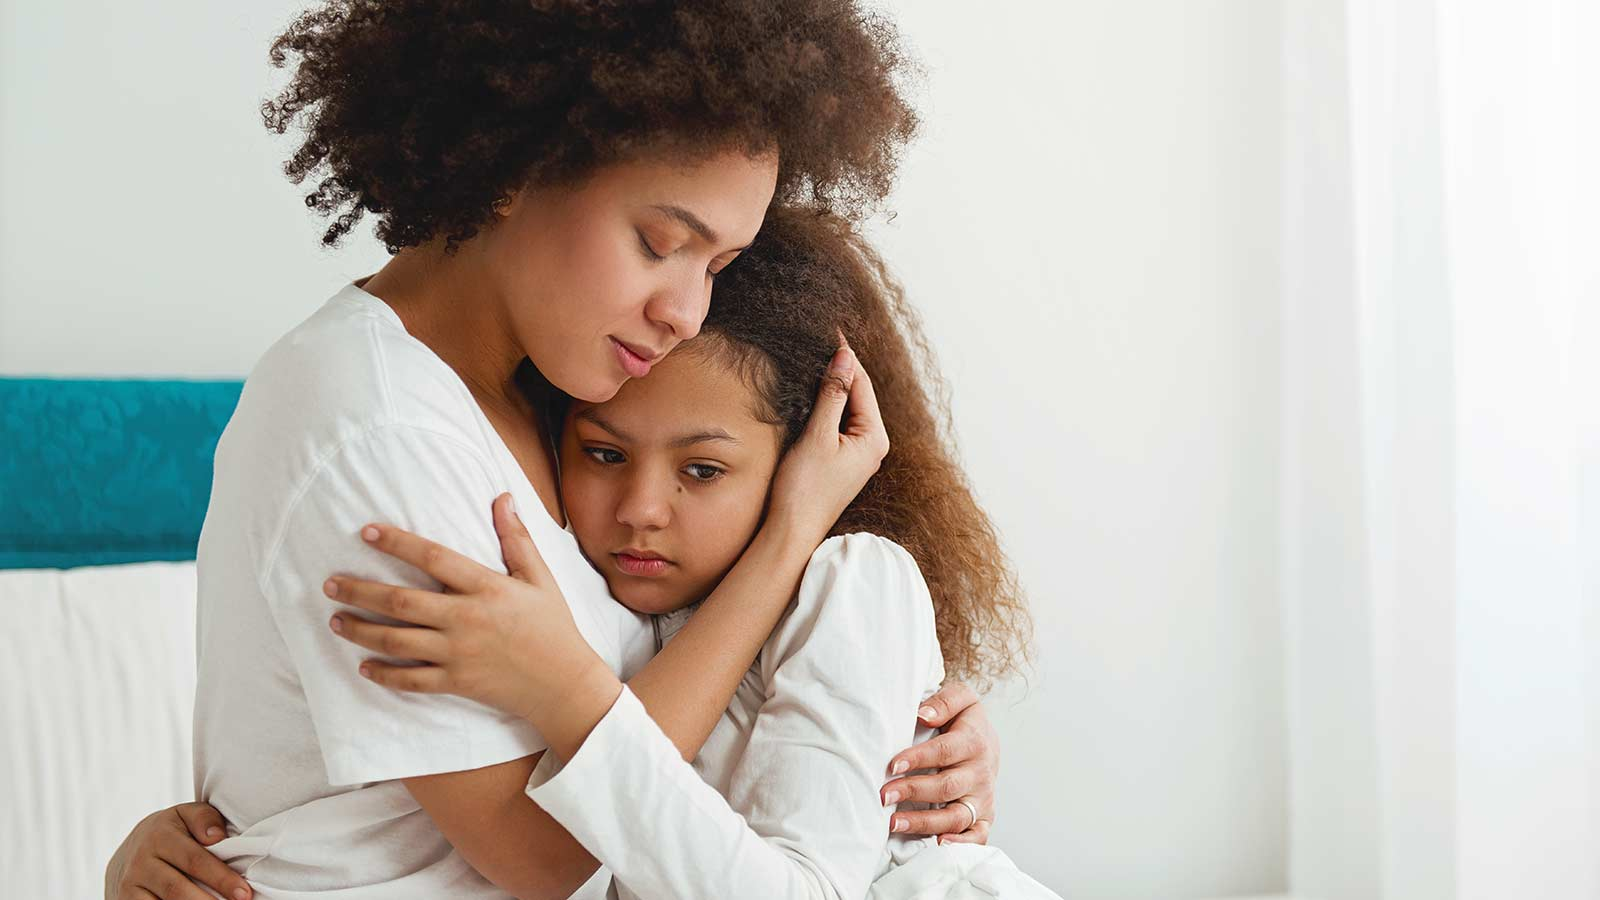 A mom hugging her daughter while listening to her concerns.